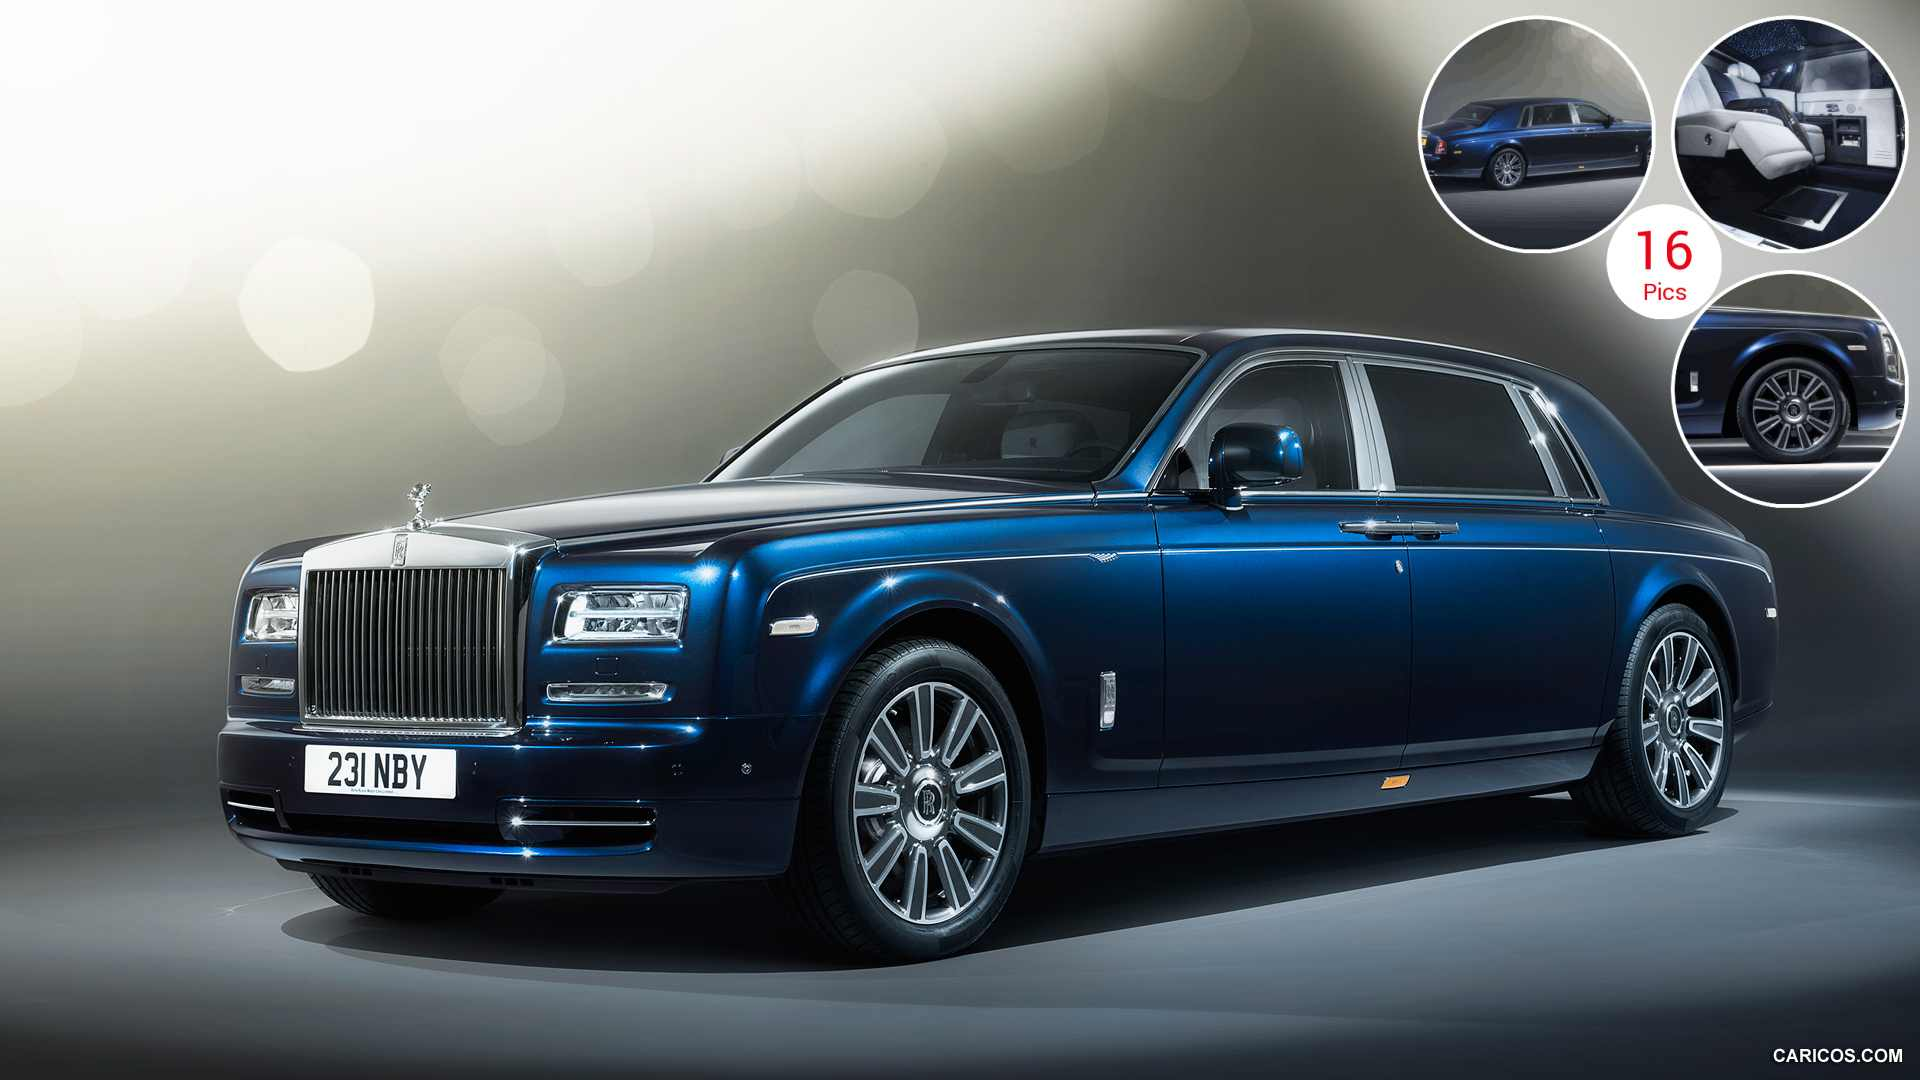 2015 Rolls-Royce Phantom Limelight - Front | HD Wallpaper #1 | 1920x1080